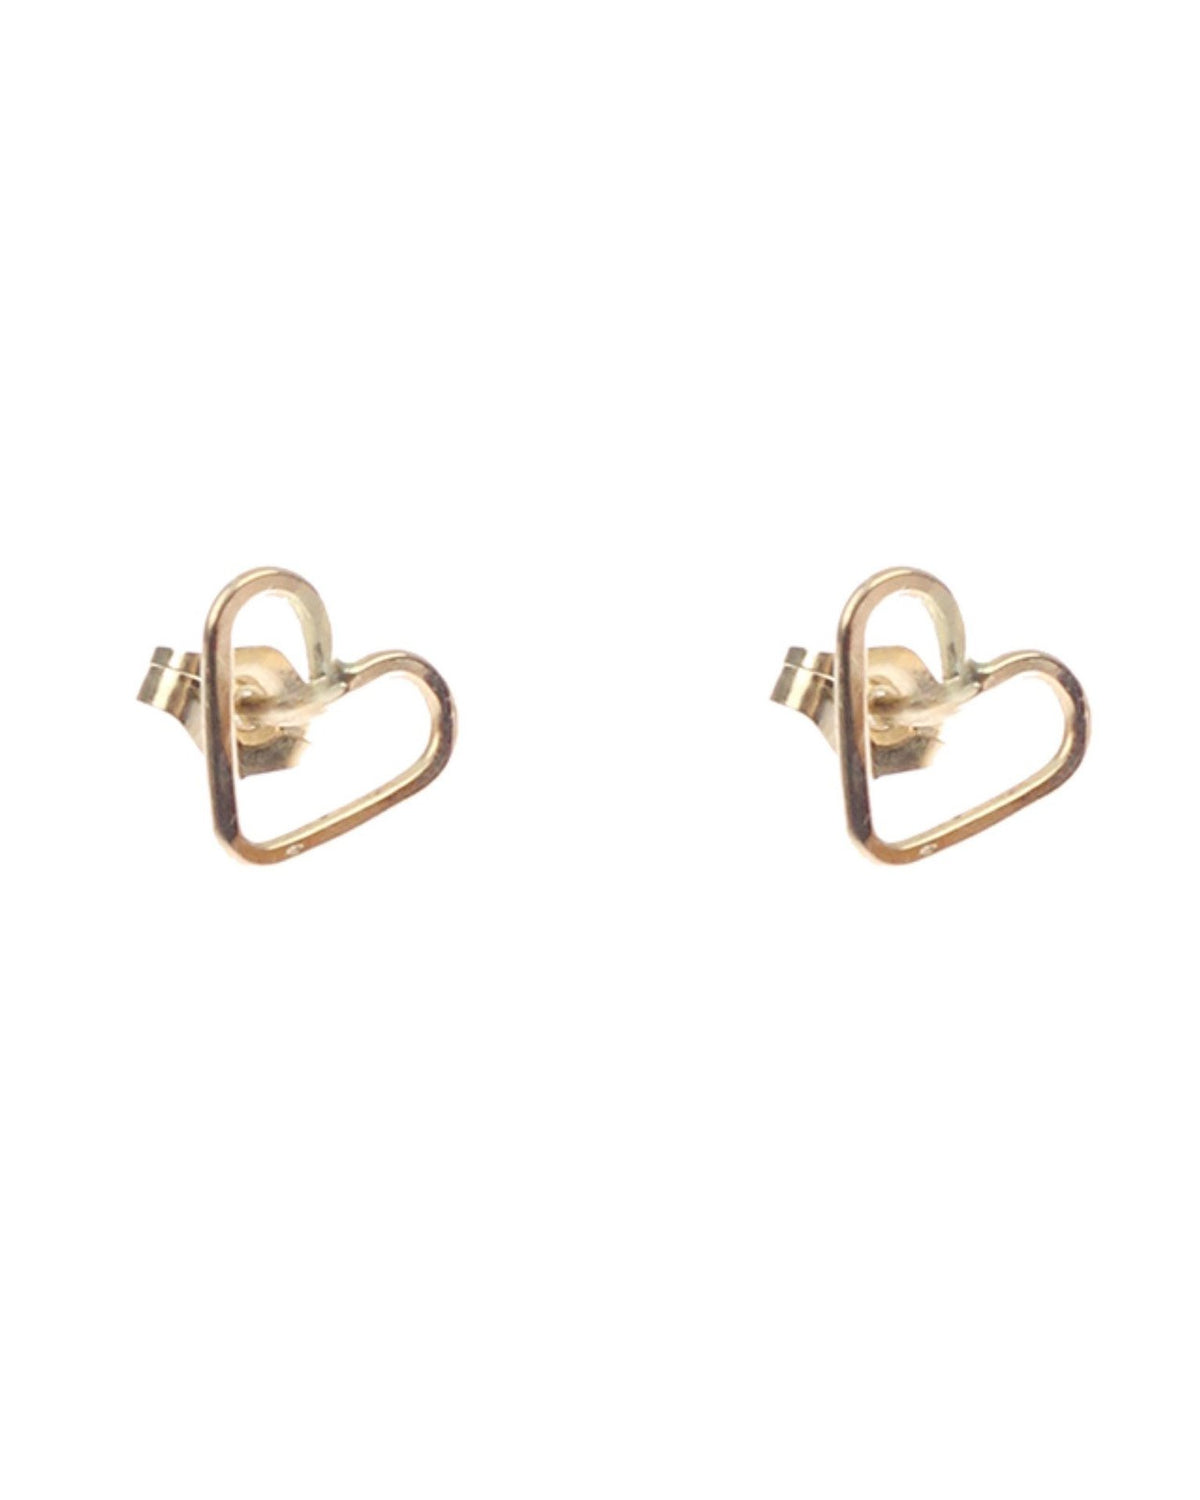 Nashelle Jewelry Gold / O/S Lucky Mini Heart Posts in Gold